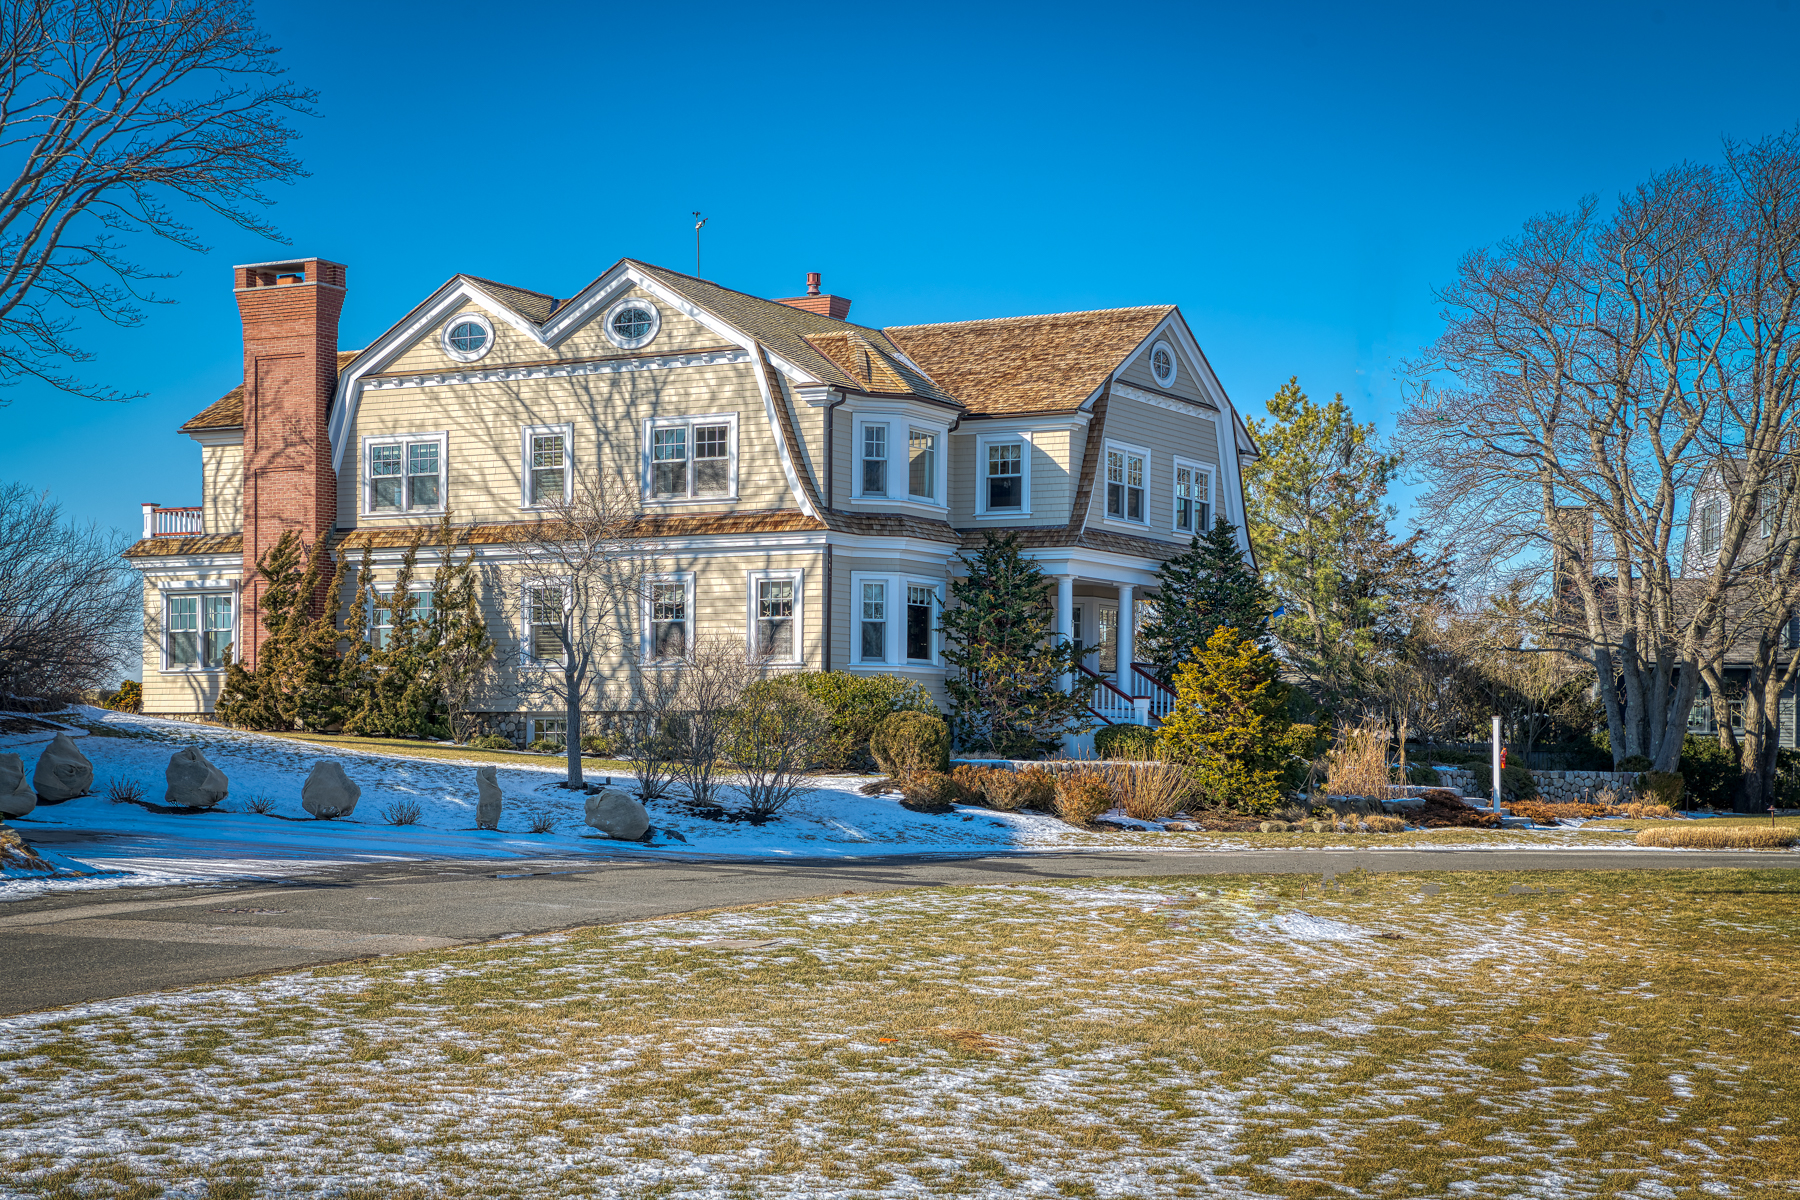 Single Family Homes for Active at Expansive Ocean Views 1 Sargent Road Marblehead, Massachusetts 01945 United States